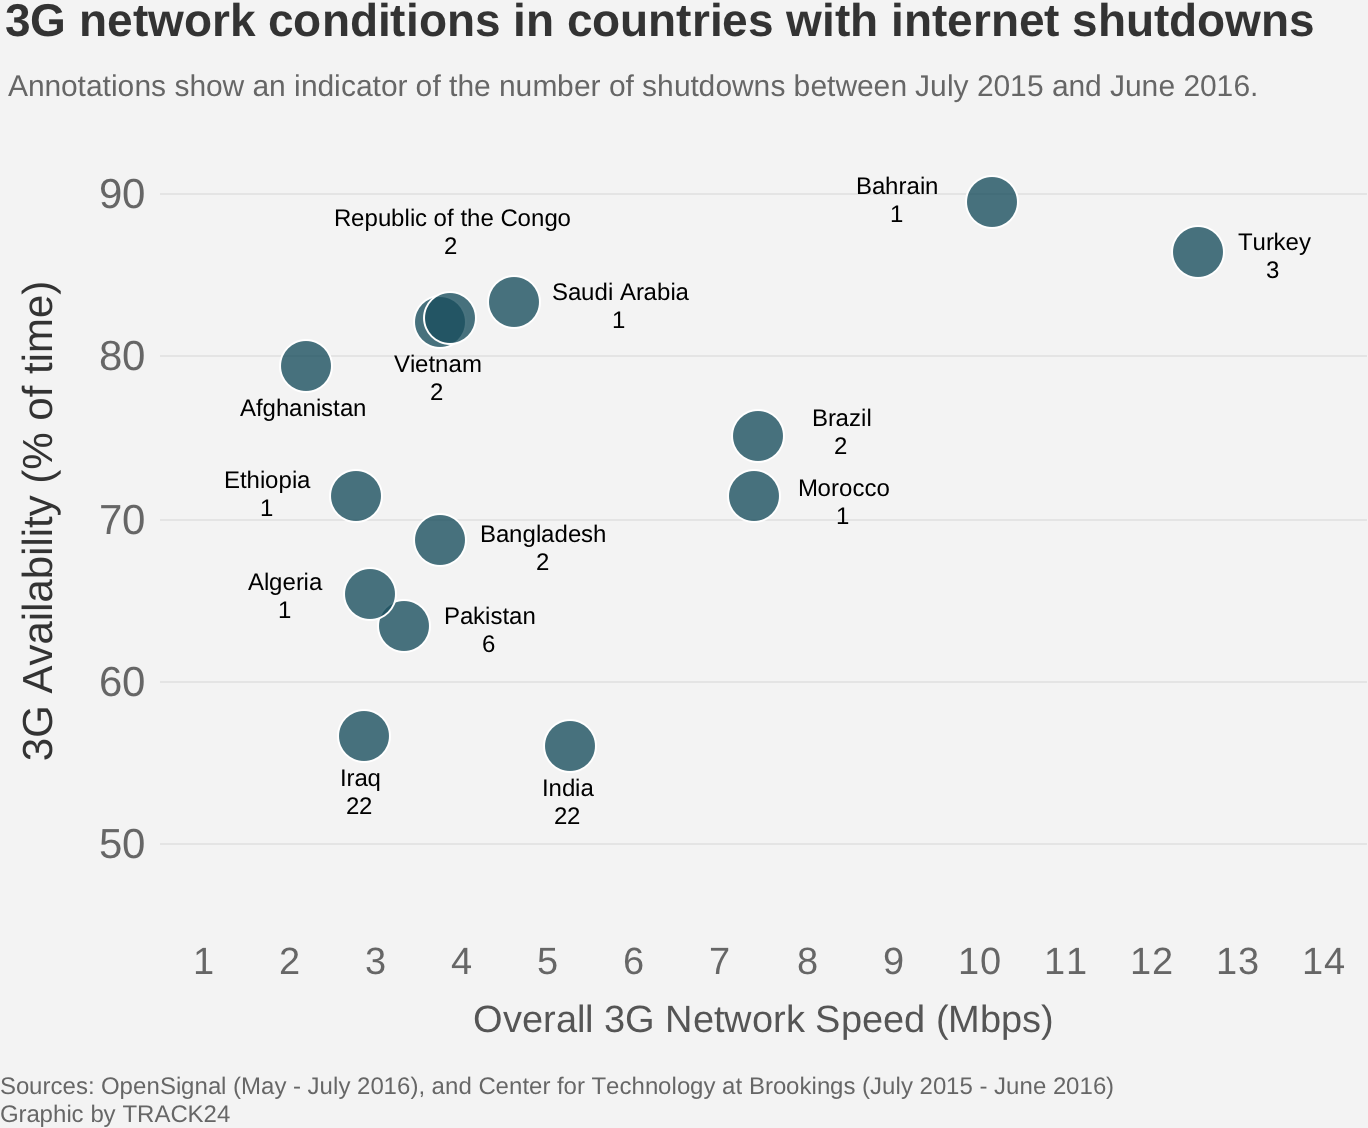 3G network conditions in countries with internet shutdowns - 2